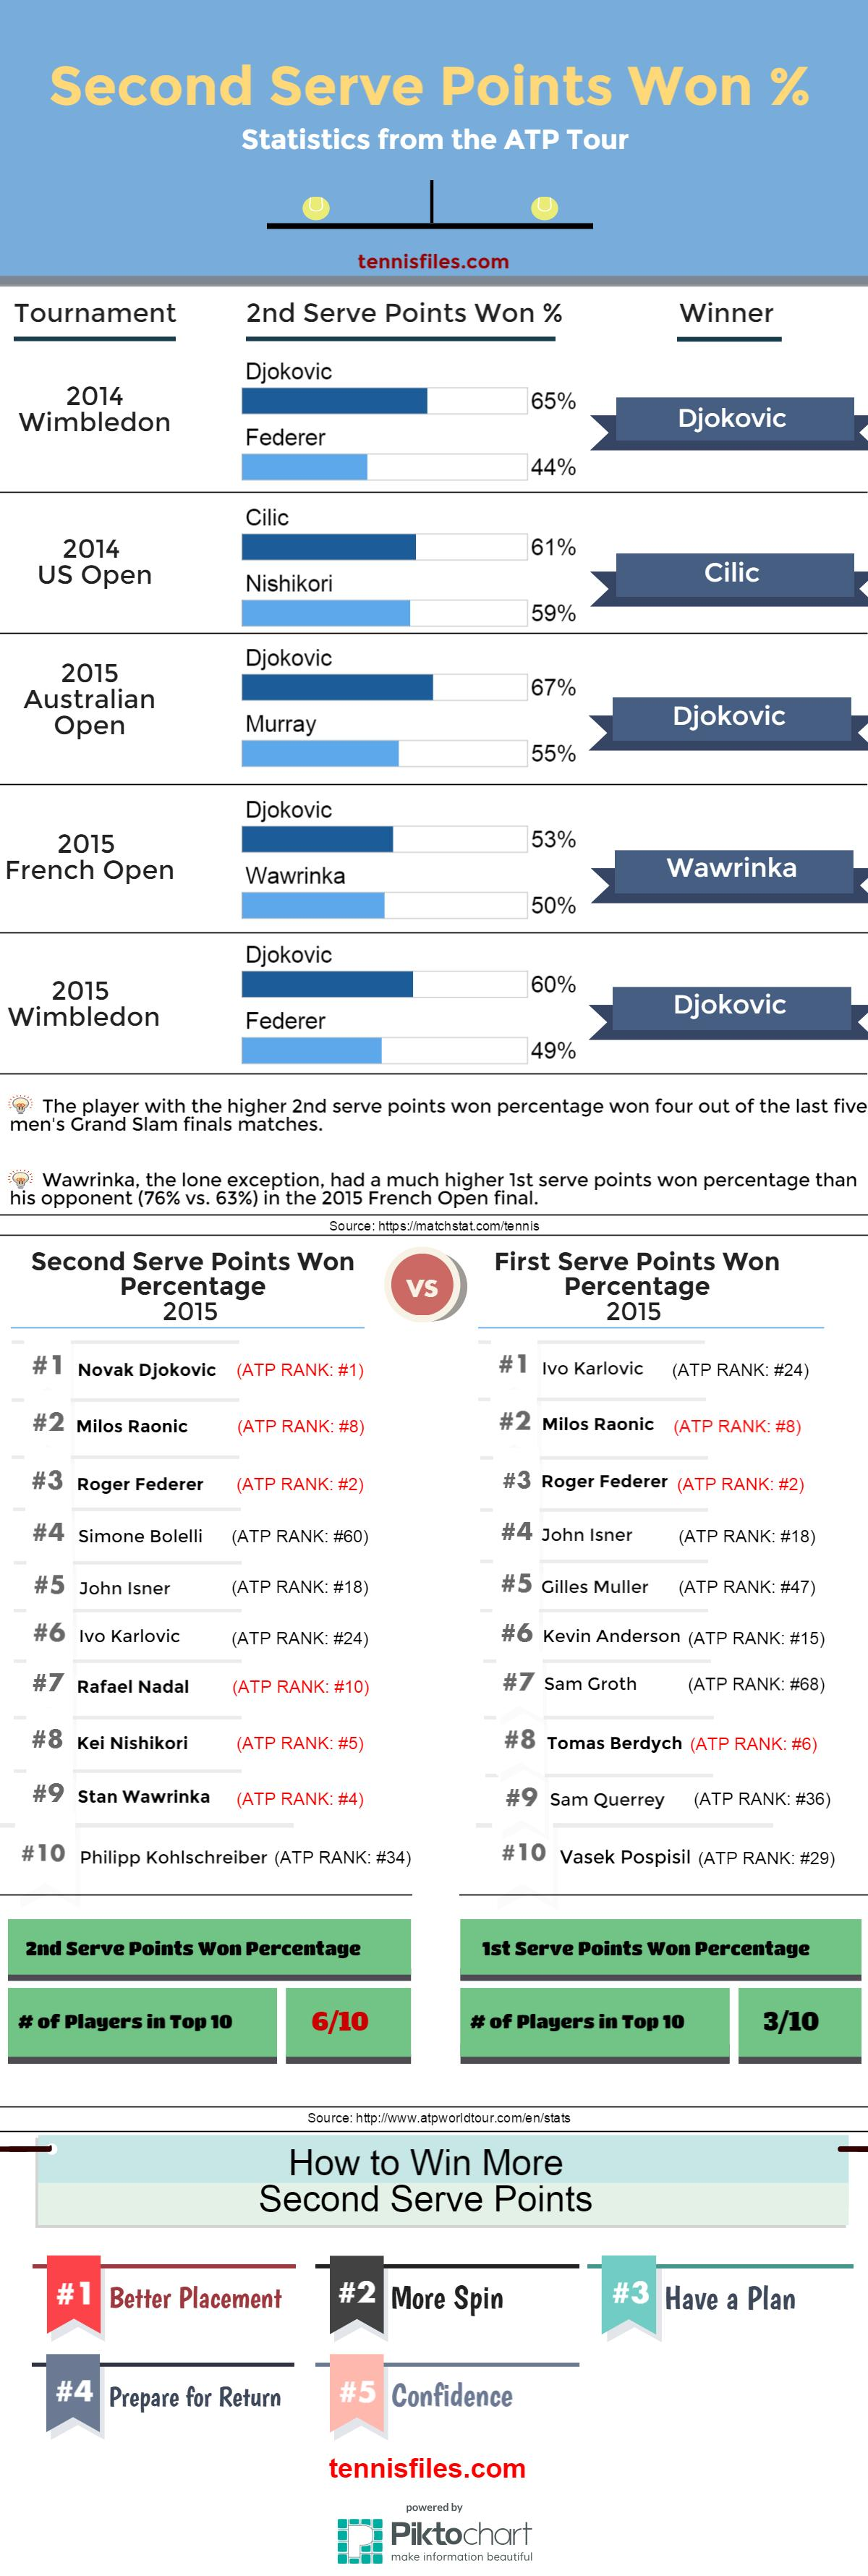 Infographic of Second Serve Points Won Percentage - tennisfiles.com